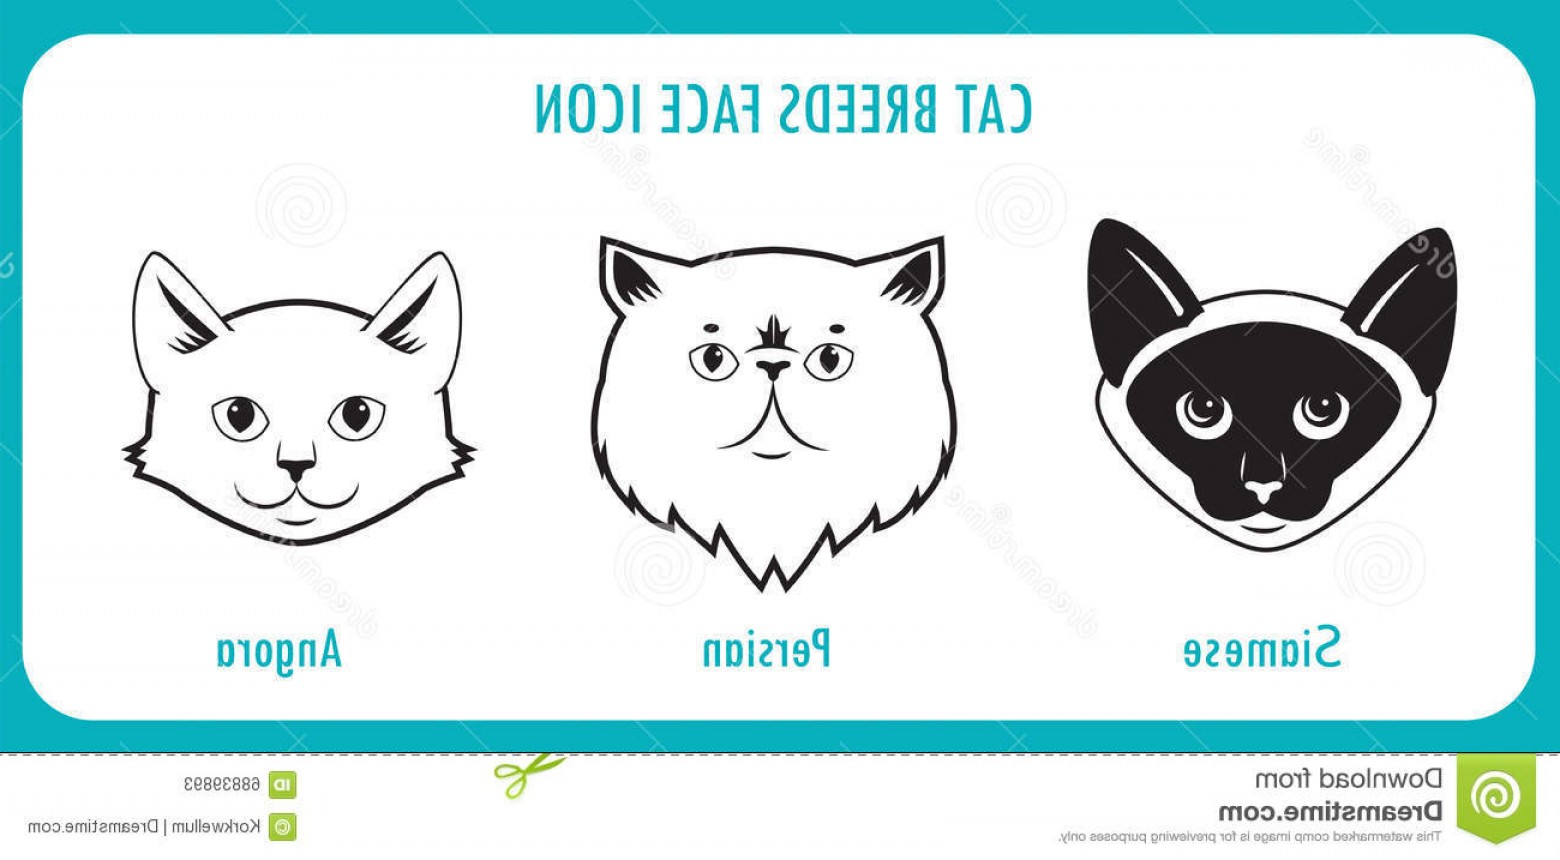 Siamese Cat Vector Transparent Background: Stock Illustration Breeds Face Icons Angora Persian Siamese Cat Black White Vector White Background Cat Pictures Cat Image